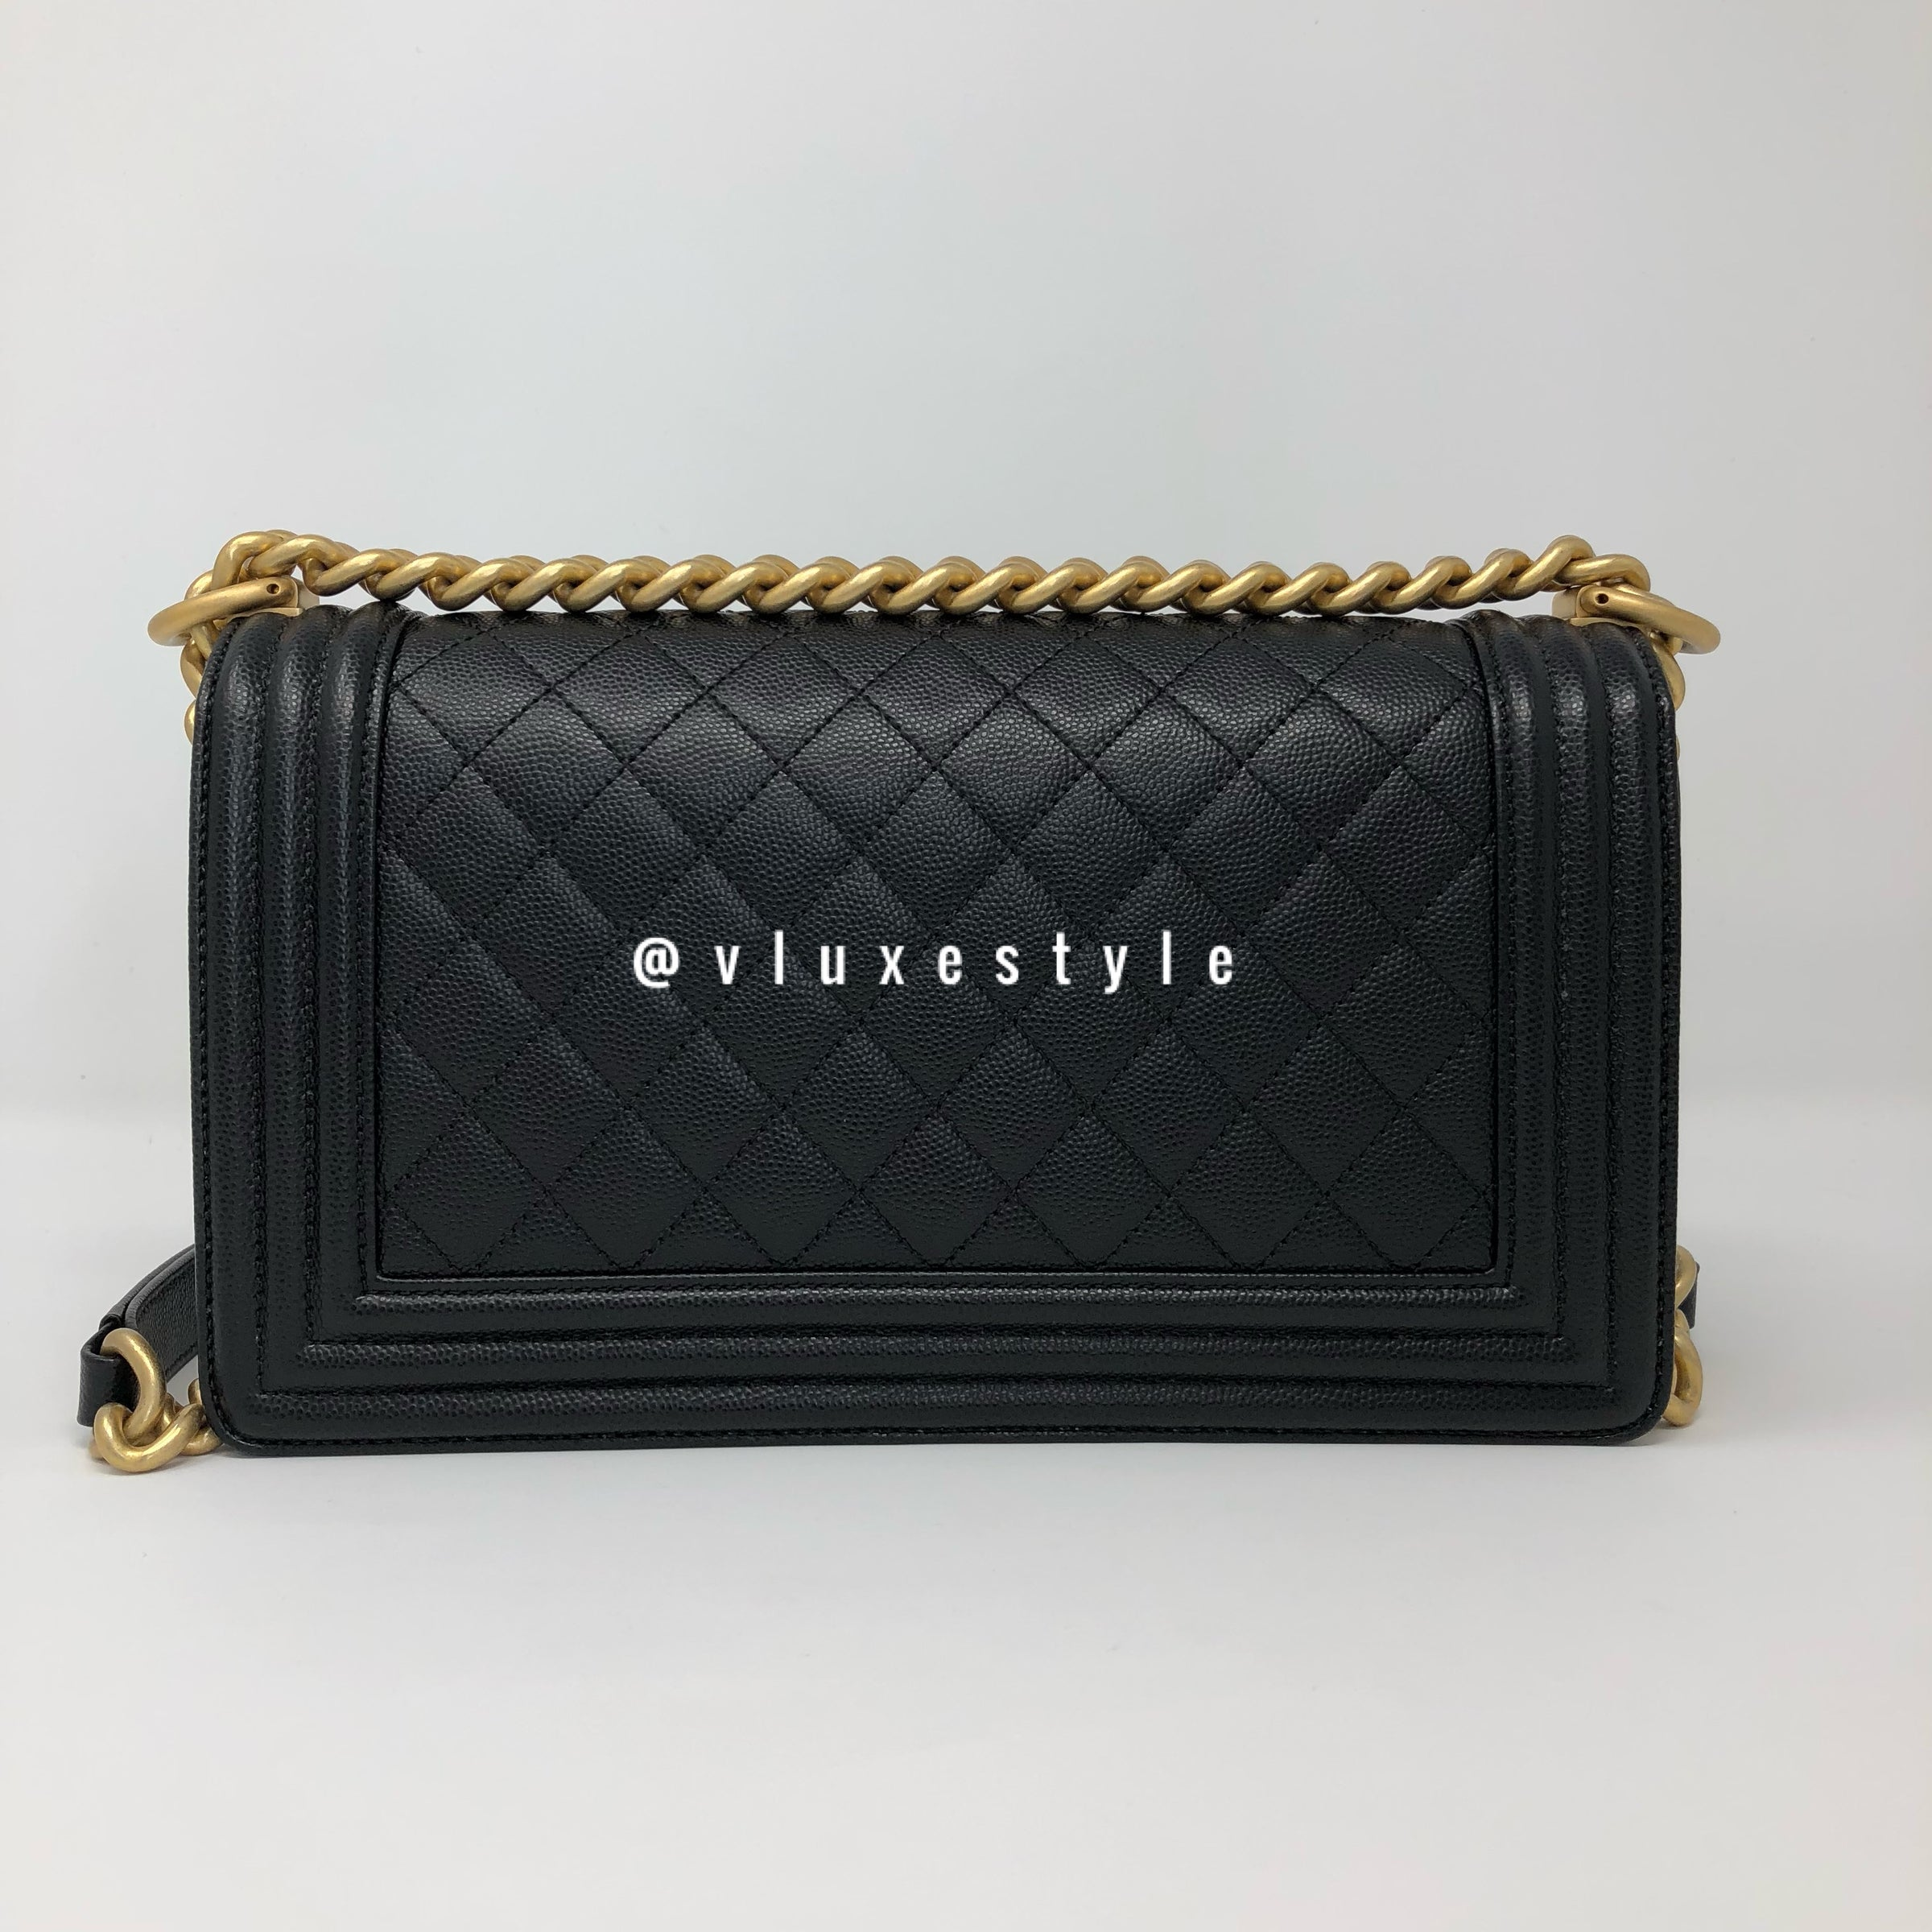 8005175dc37c Le boy Old Medium Black Caviar with brushed gold hardware – VLuxeStyle